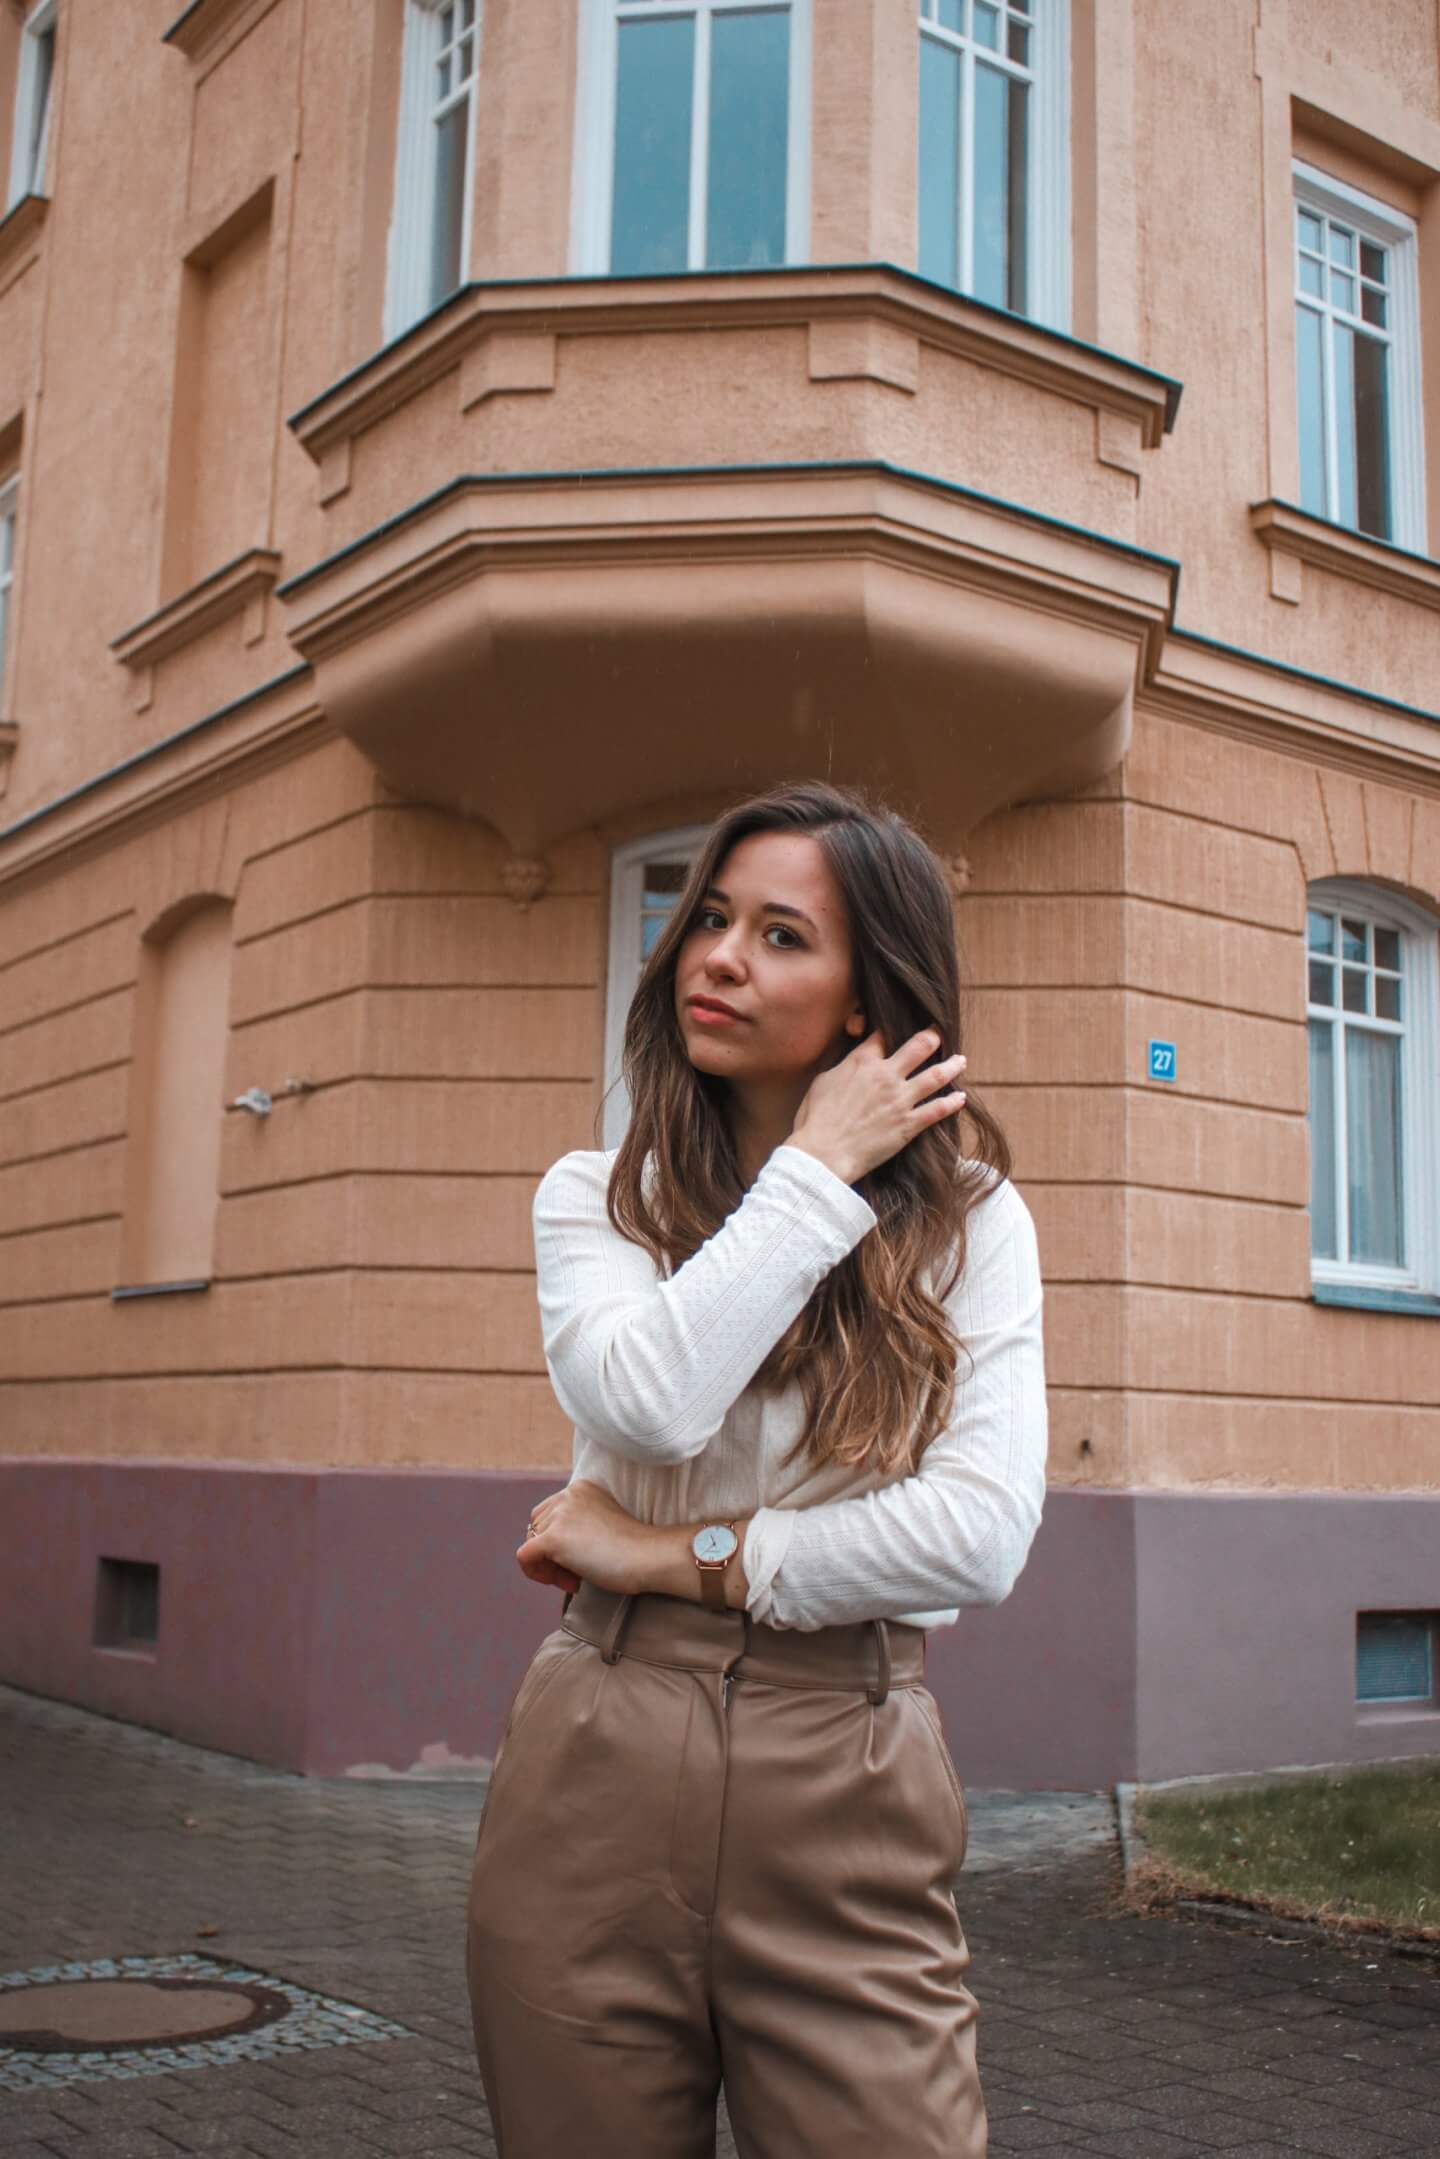 Rocking that Basic Outfit - eine Outfit Inspiration mit simplen Basic Pieces